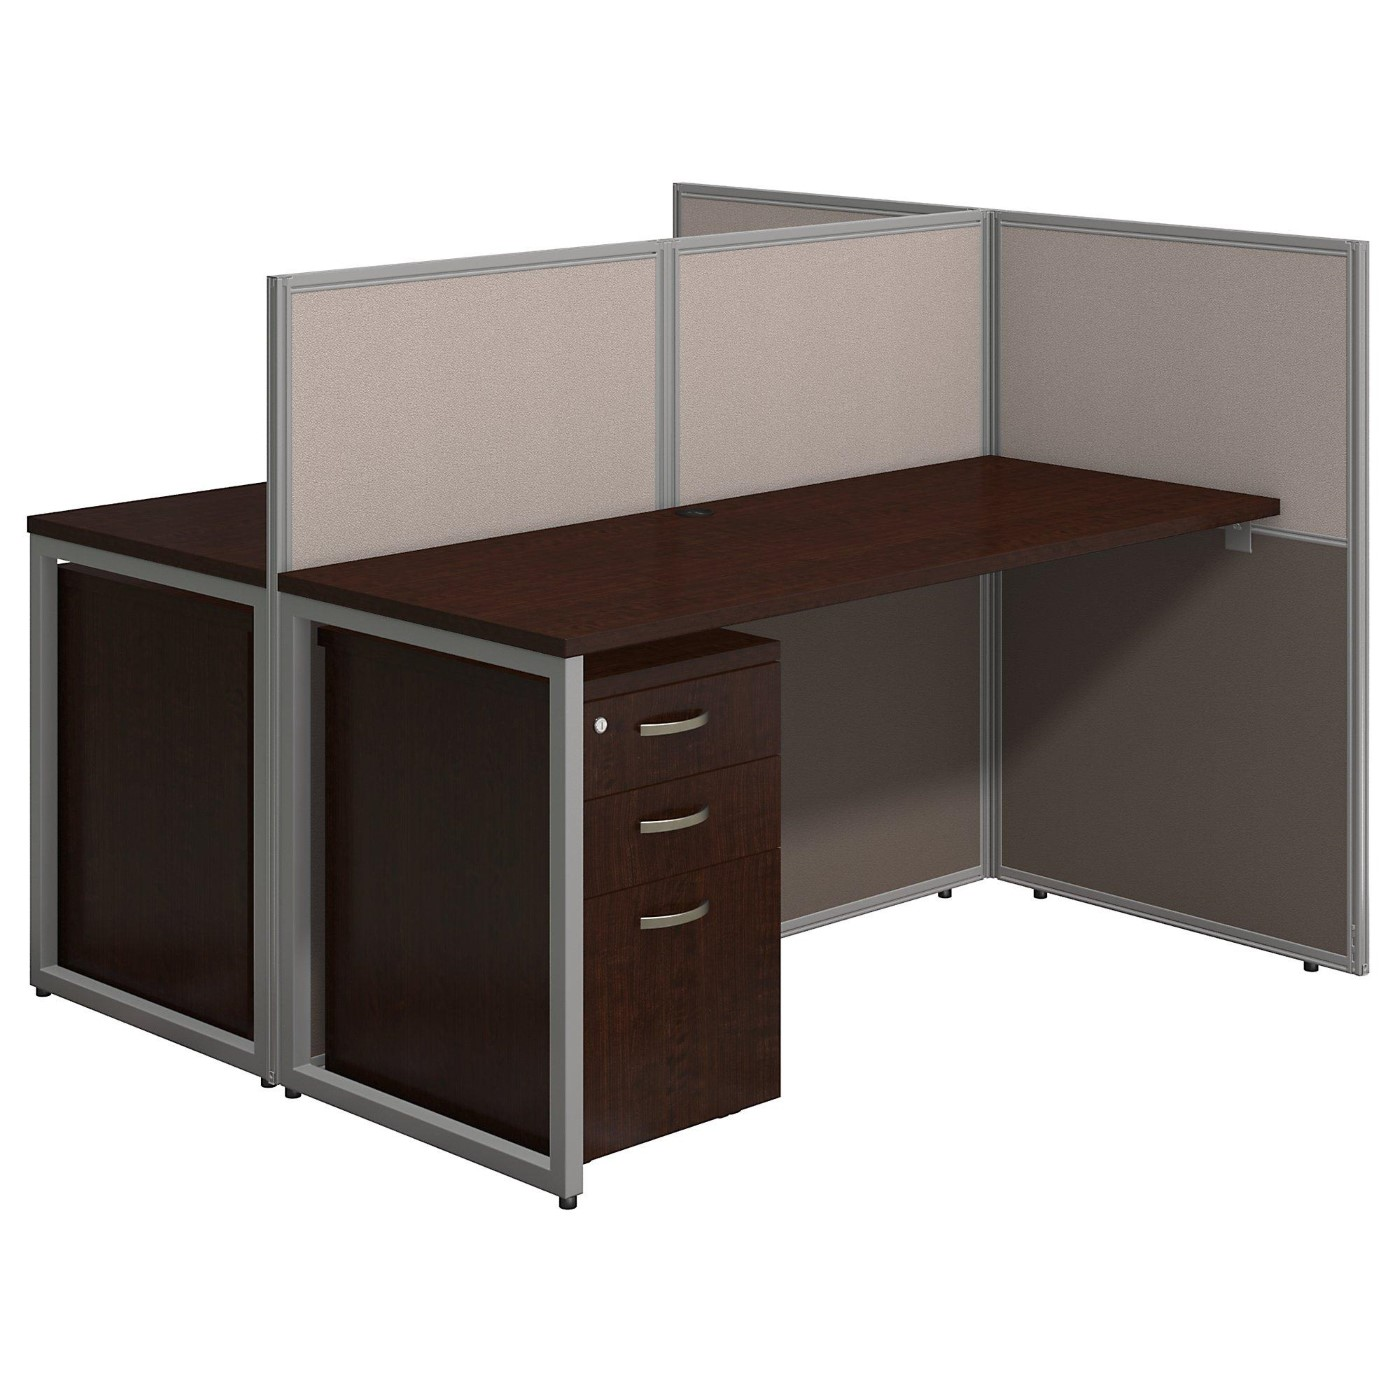 <font color=#c60><b>BUSH BUSINESS FURNITURE EASY OFFICE 60W TWO PERSON STRAIGHT DESK OPEN OFFICE WITH MOBILE FILE CABINETS. FREE SHIPPING</font></b>